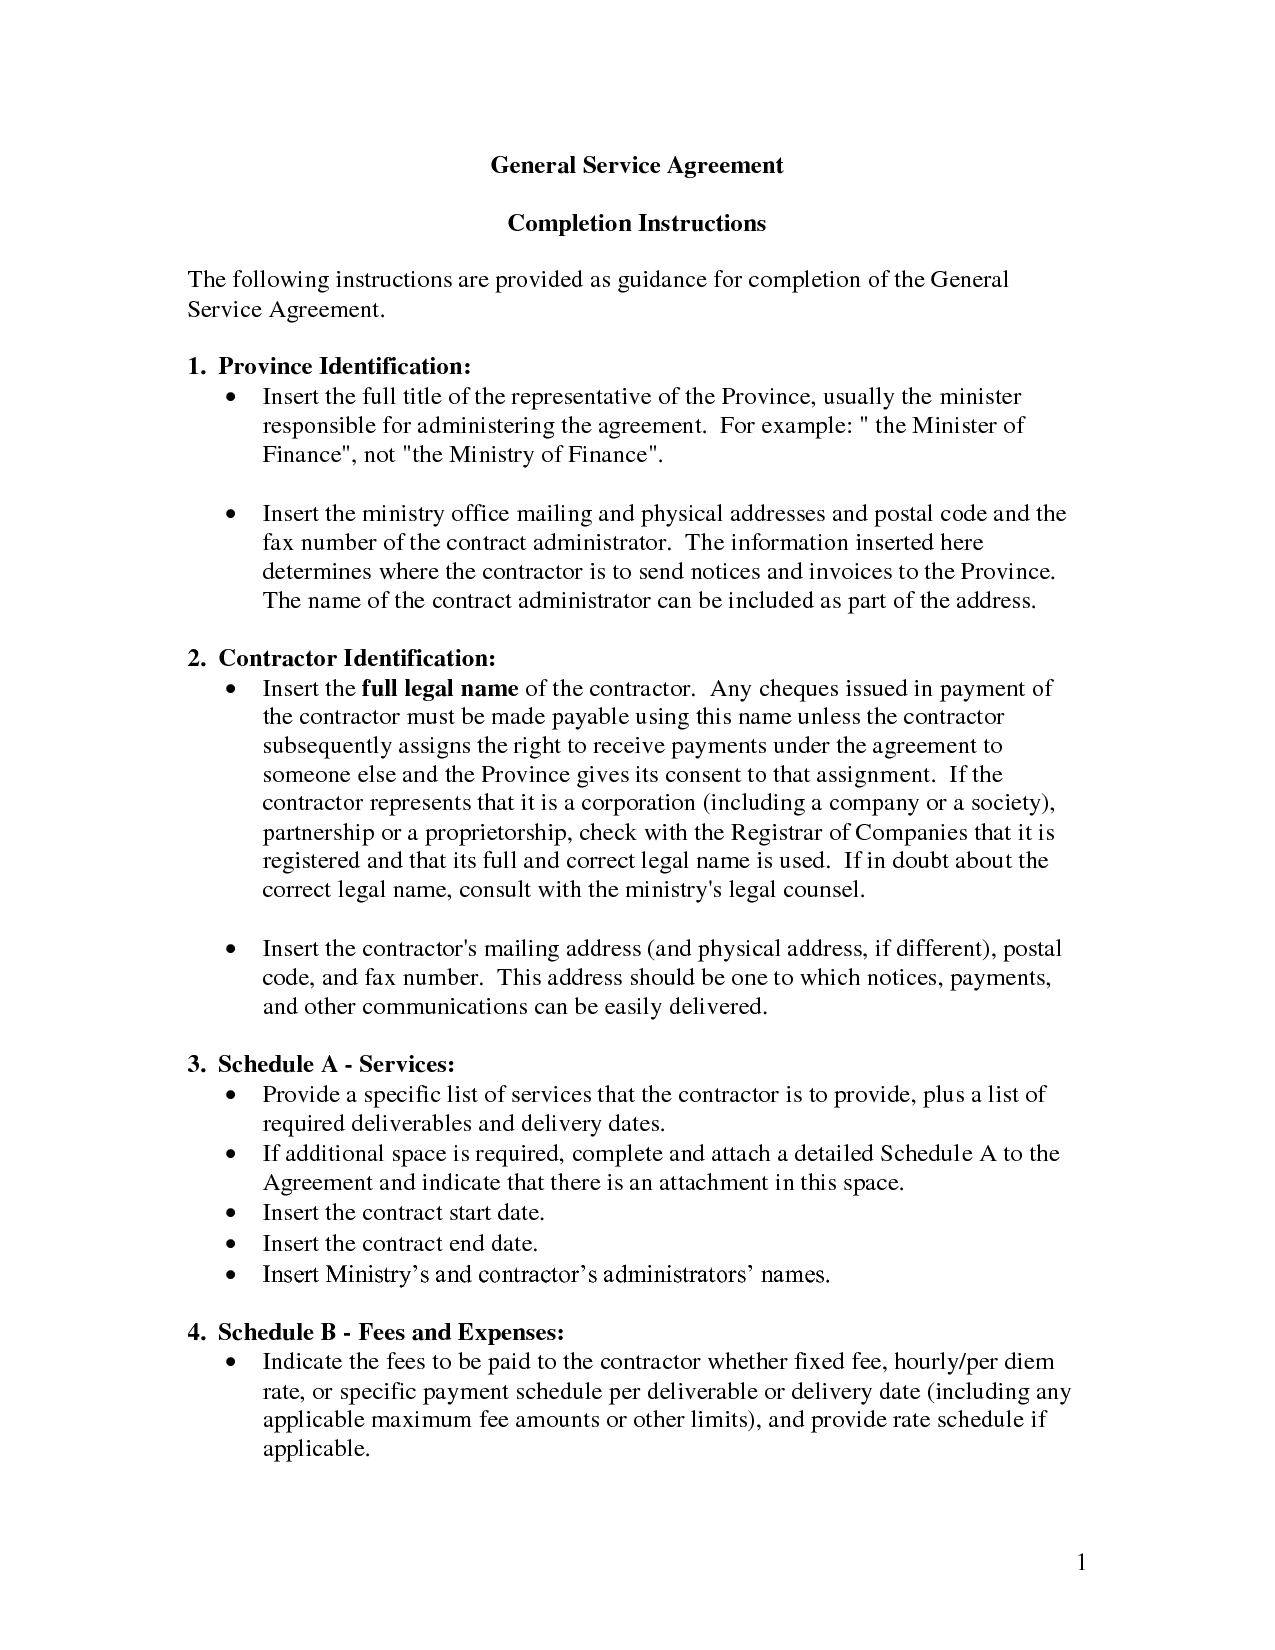 General Service Agreement Template By Banter General Contract For